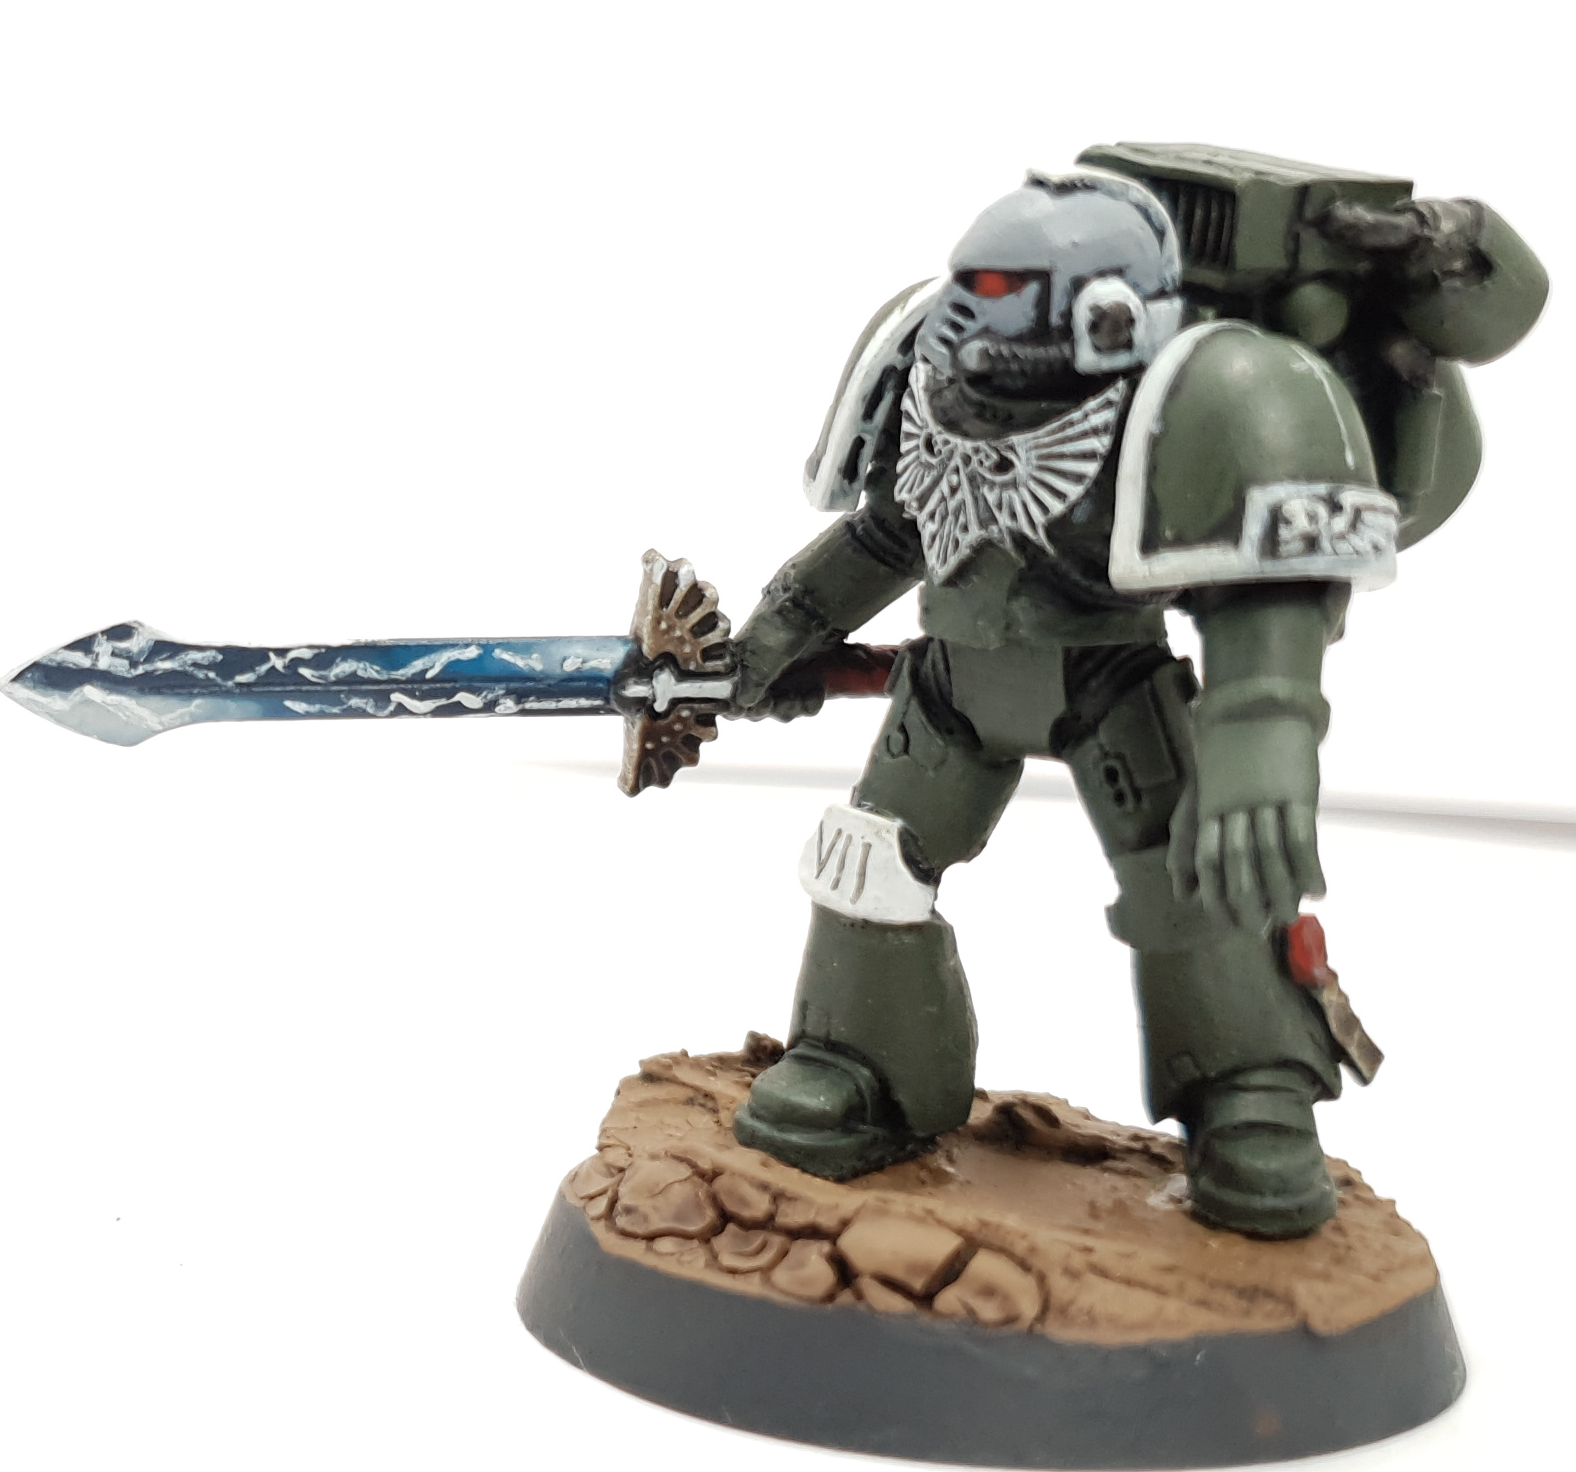 Sword of Davion Space Marine Assault Marine Veteran Sergeant